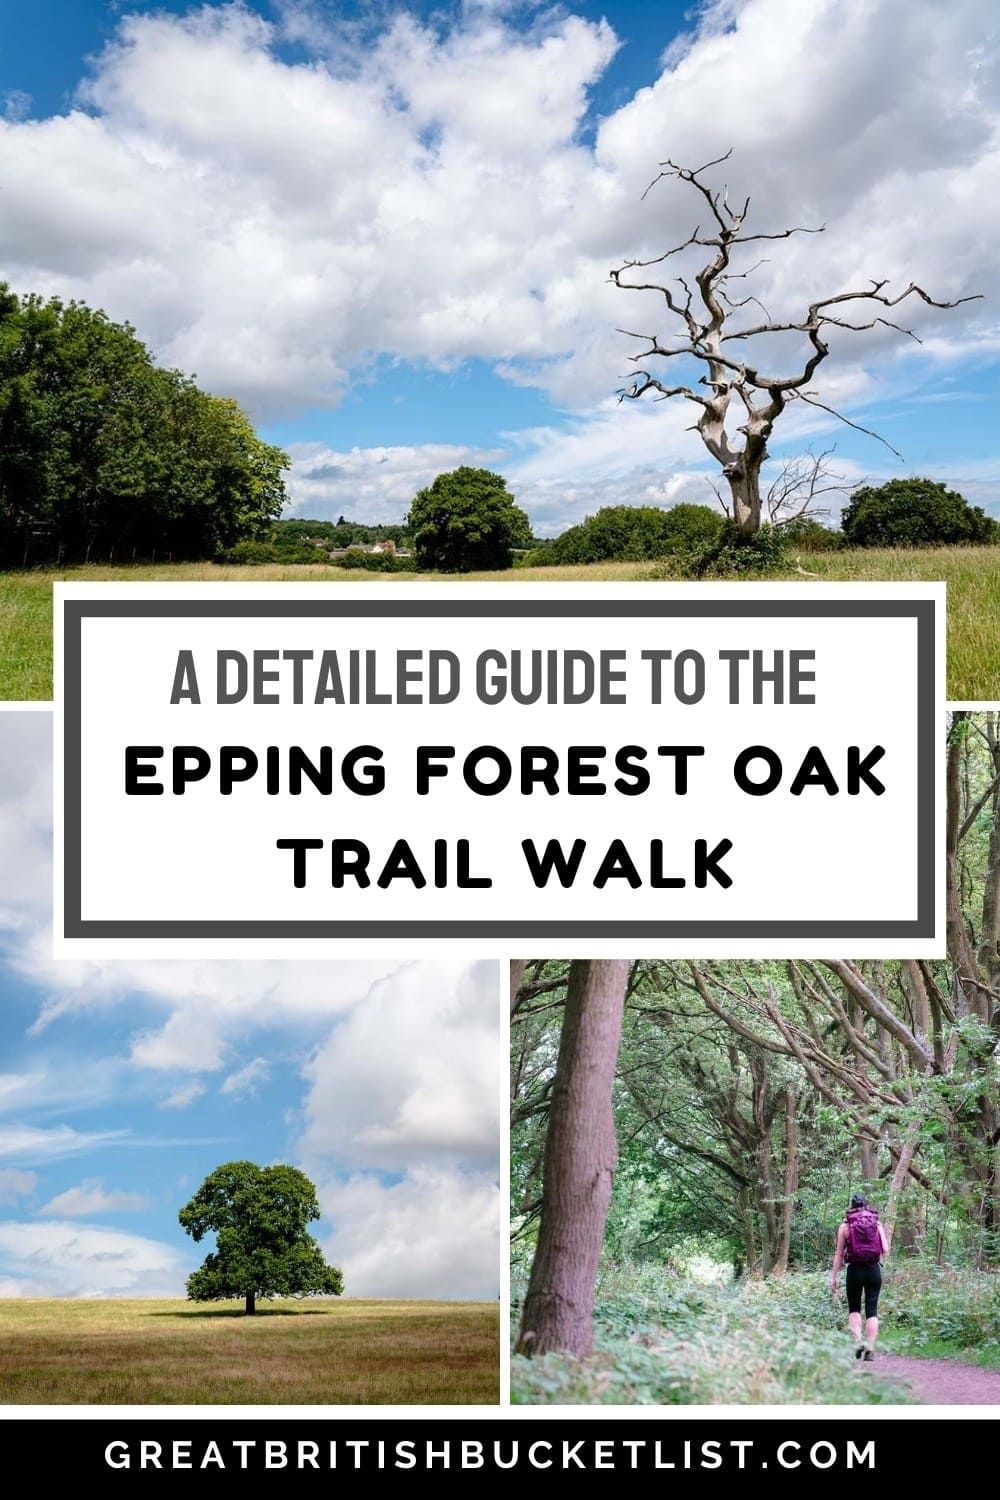 A Detailed Guide to the Epping Forest Oak Trail Walk